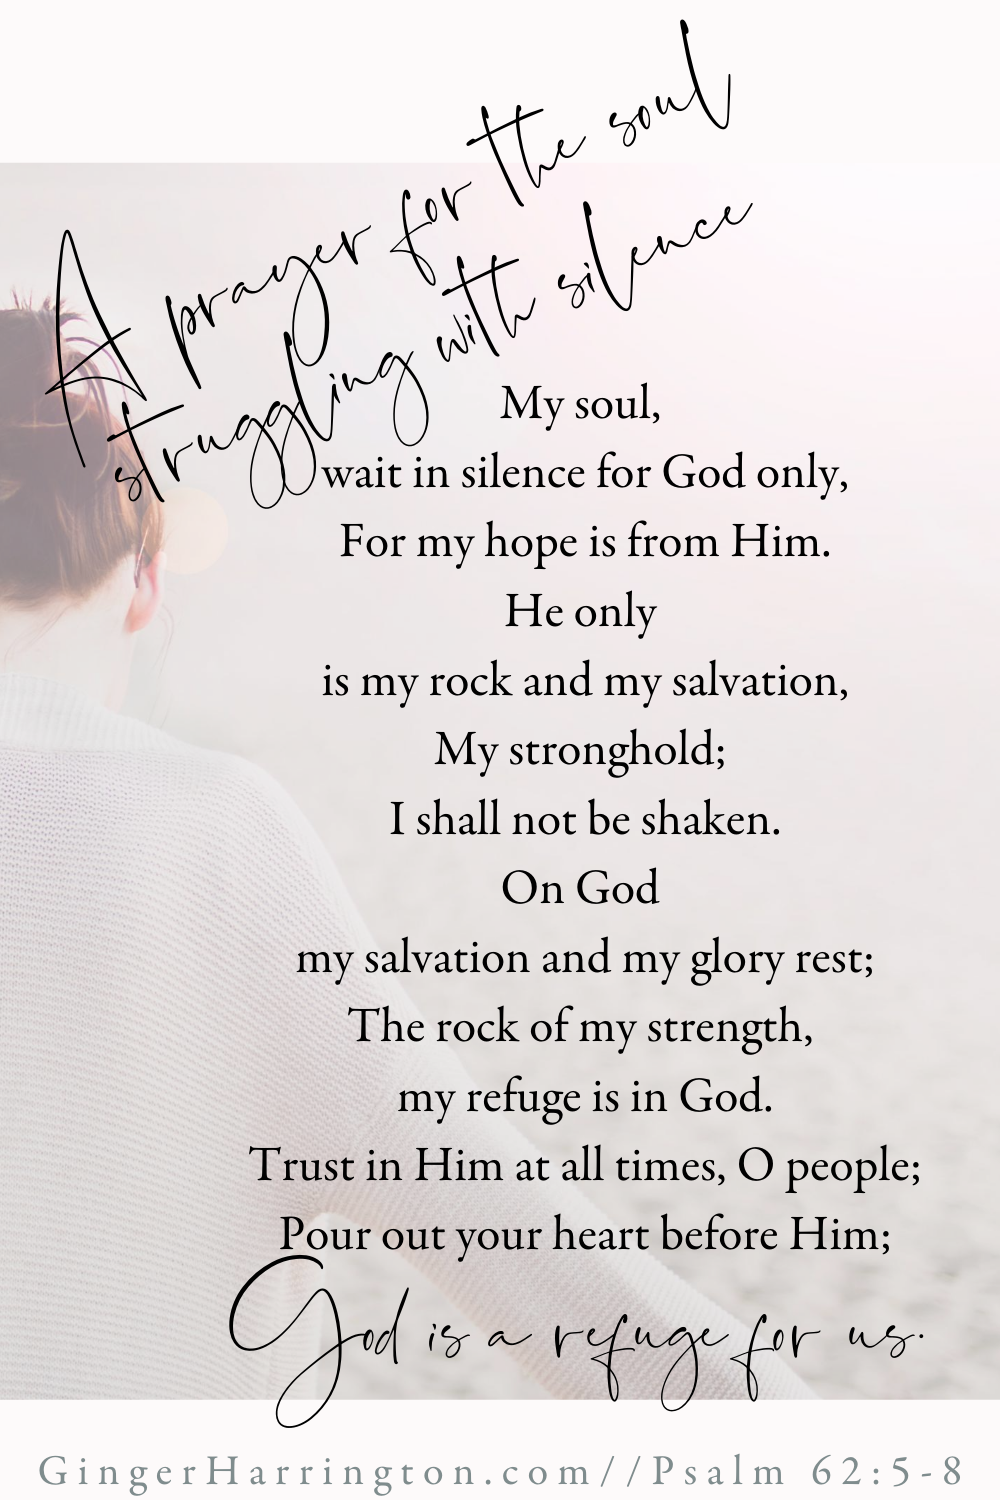 Free Printable Prayer. Psalm 62:5-8 is a powerful prayer to strengthen your soul in times when God is silent or seems distant. #Psalms #psalm62 #whengodissilent #darknightofthesoul #spiritualgrowth #spiritualjourney #trustinggod